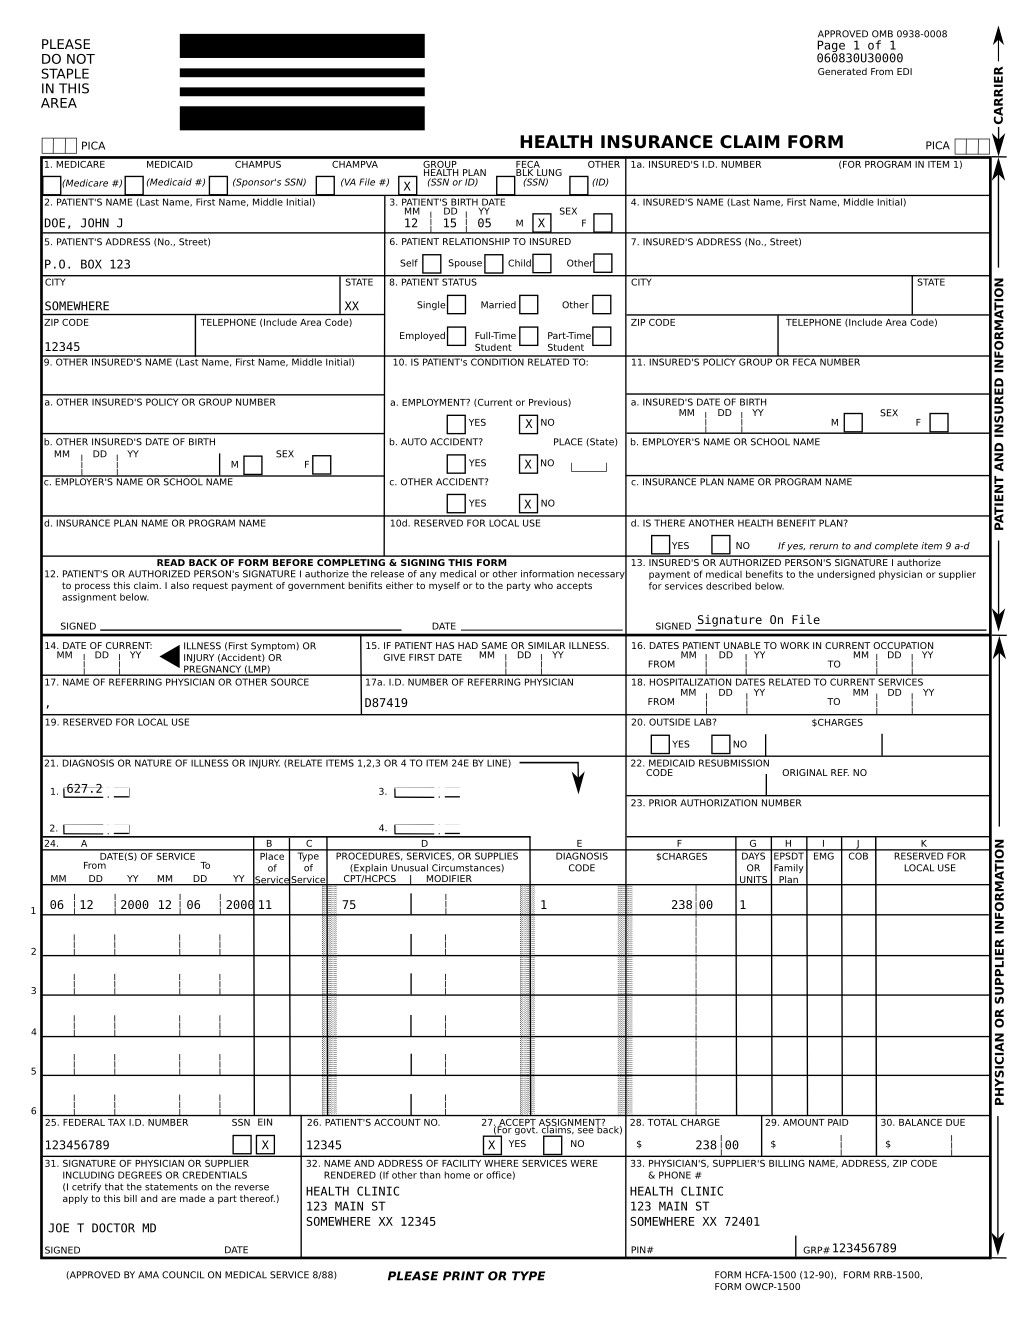 Cms 1500 Fillable Form Fillable Cms 1500 Form Fillable Forms Invoice Template Word Rental Agreement Templates